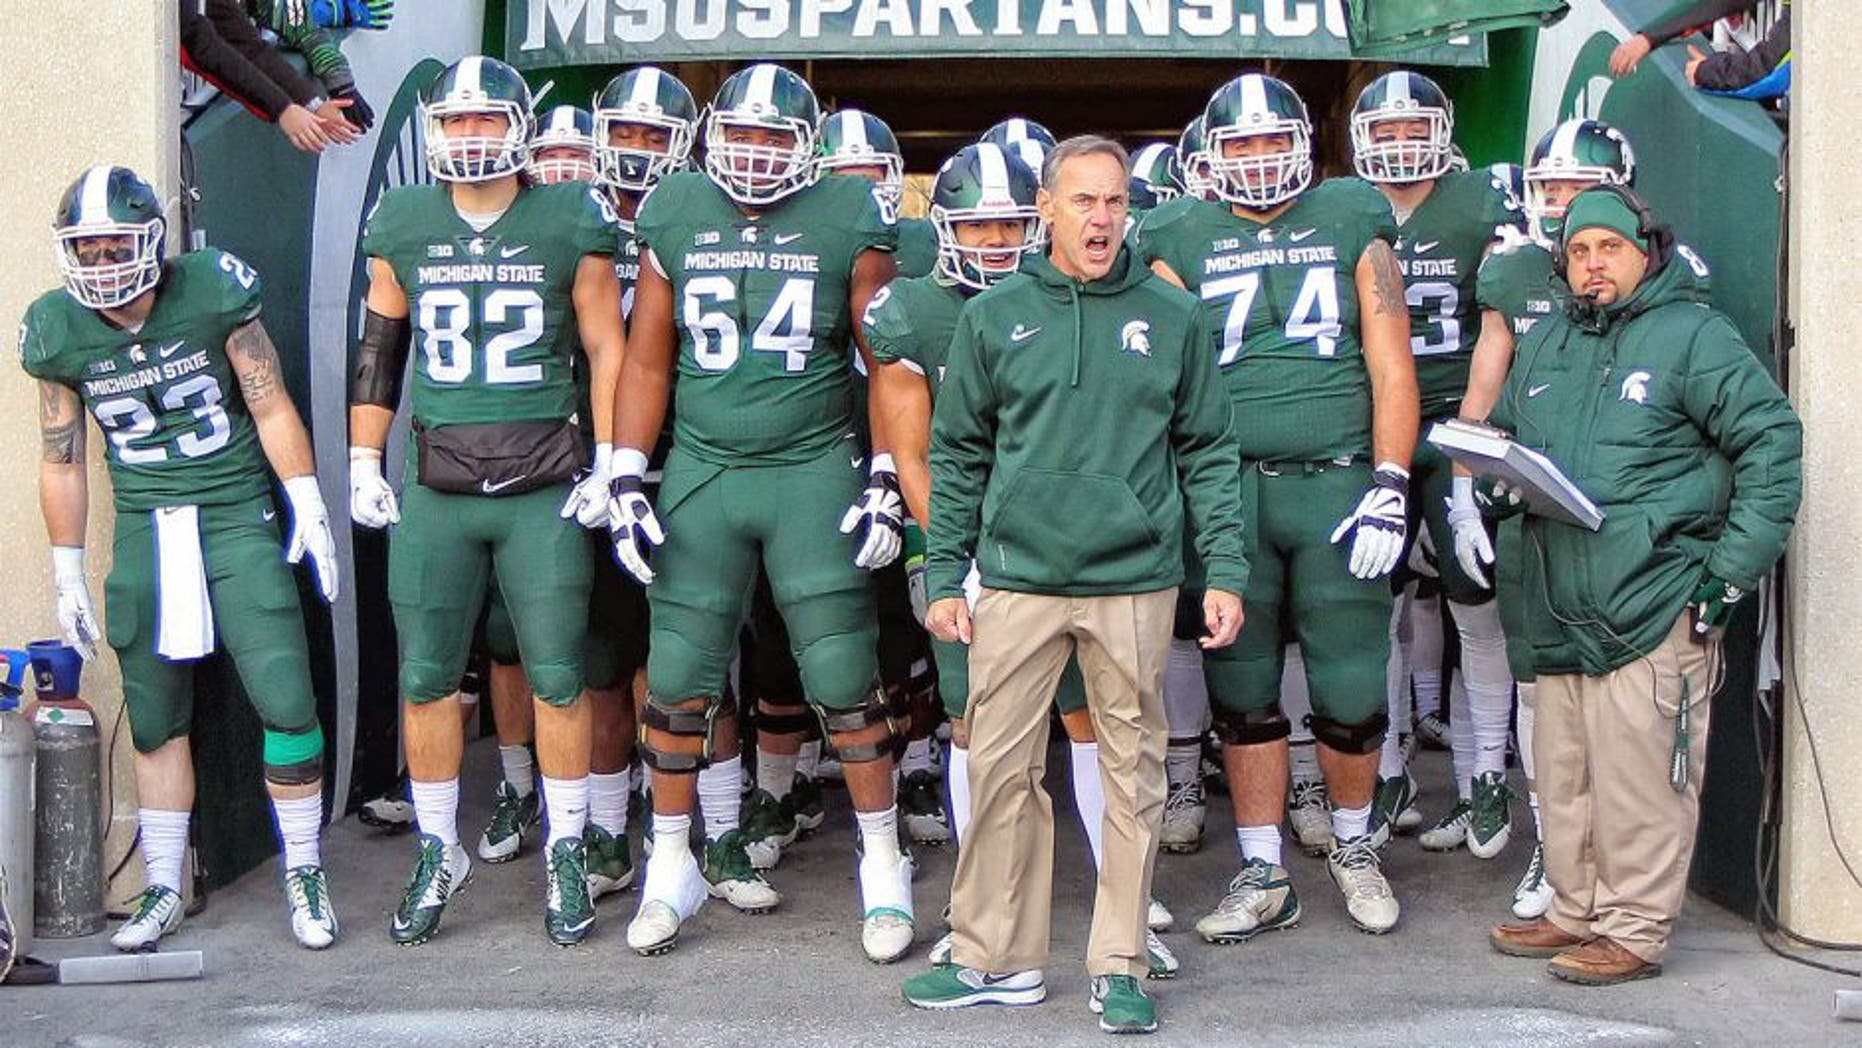 Nov 28, 2015; East Lansing, MI, USA; Michigan State Spartans head coach Mark Dantonio leads his team onto the field prior to a game against the Penn State Nittany Lions at Spartan Stadium. Mandatory Credit: Mike Carter-USA TODAY Sports